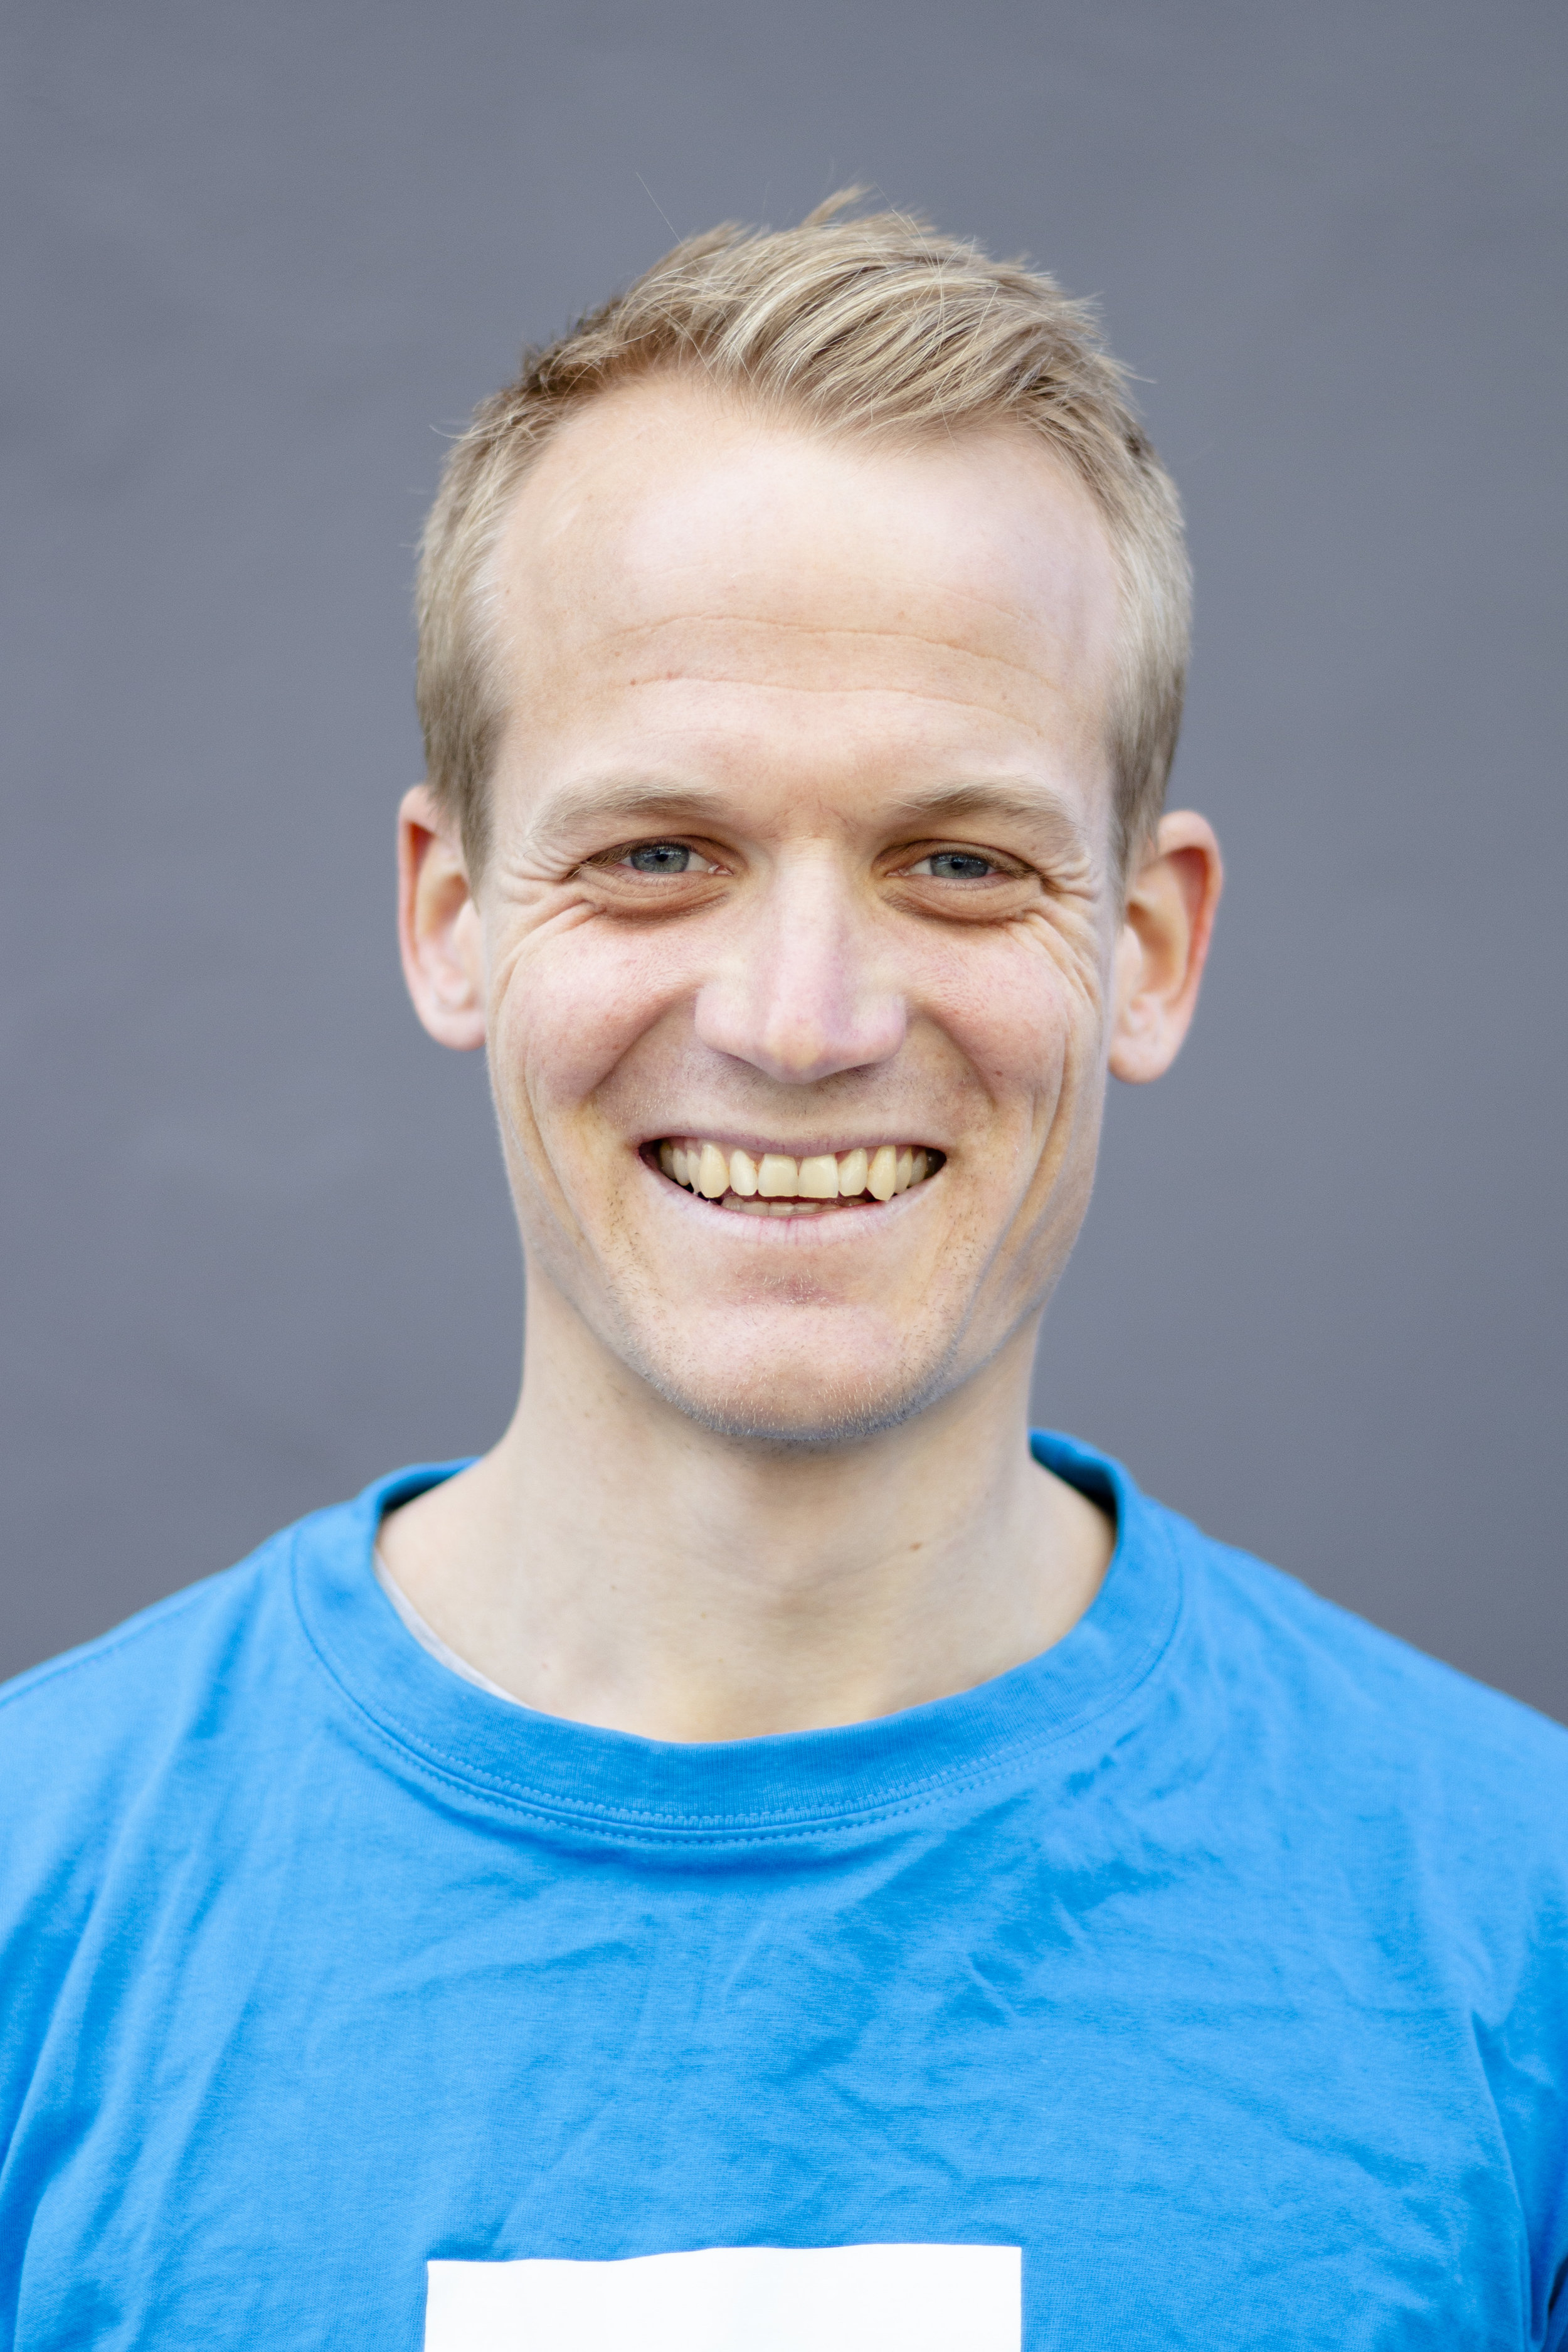 Iver Bjerkestrand - Creative thinker yet an analytic strategist, with a background in economics, finance and alpine ski racing.